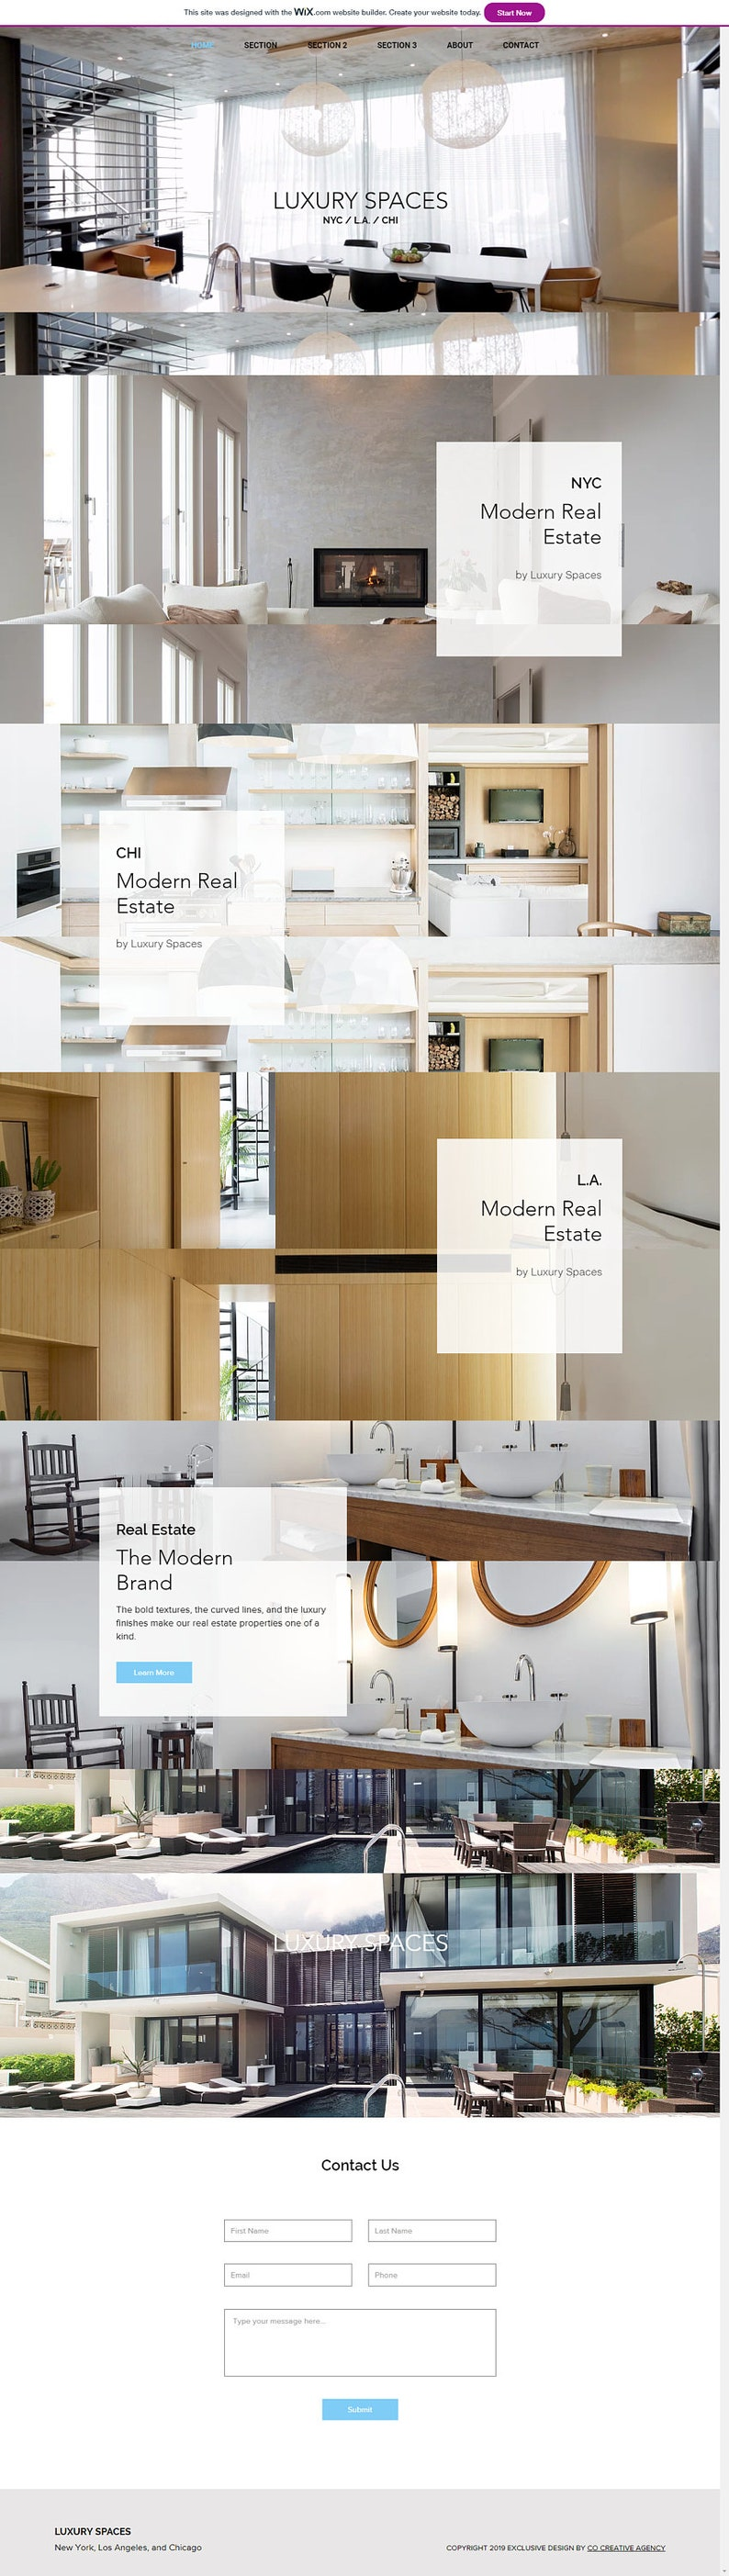 WIX Website Template for Luxury Real Estate, Photography, Portfolio – Wix  Web Design